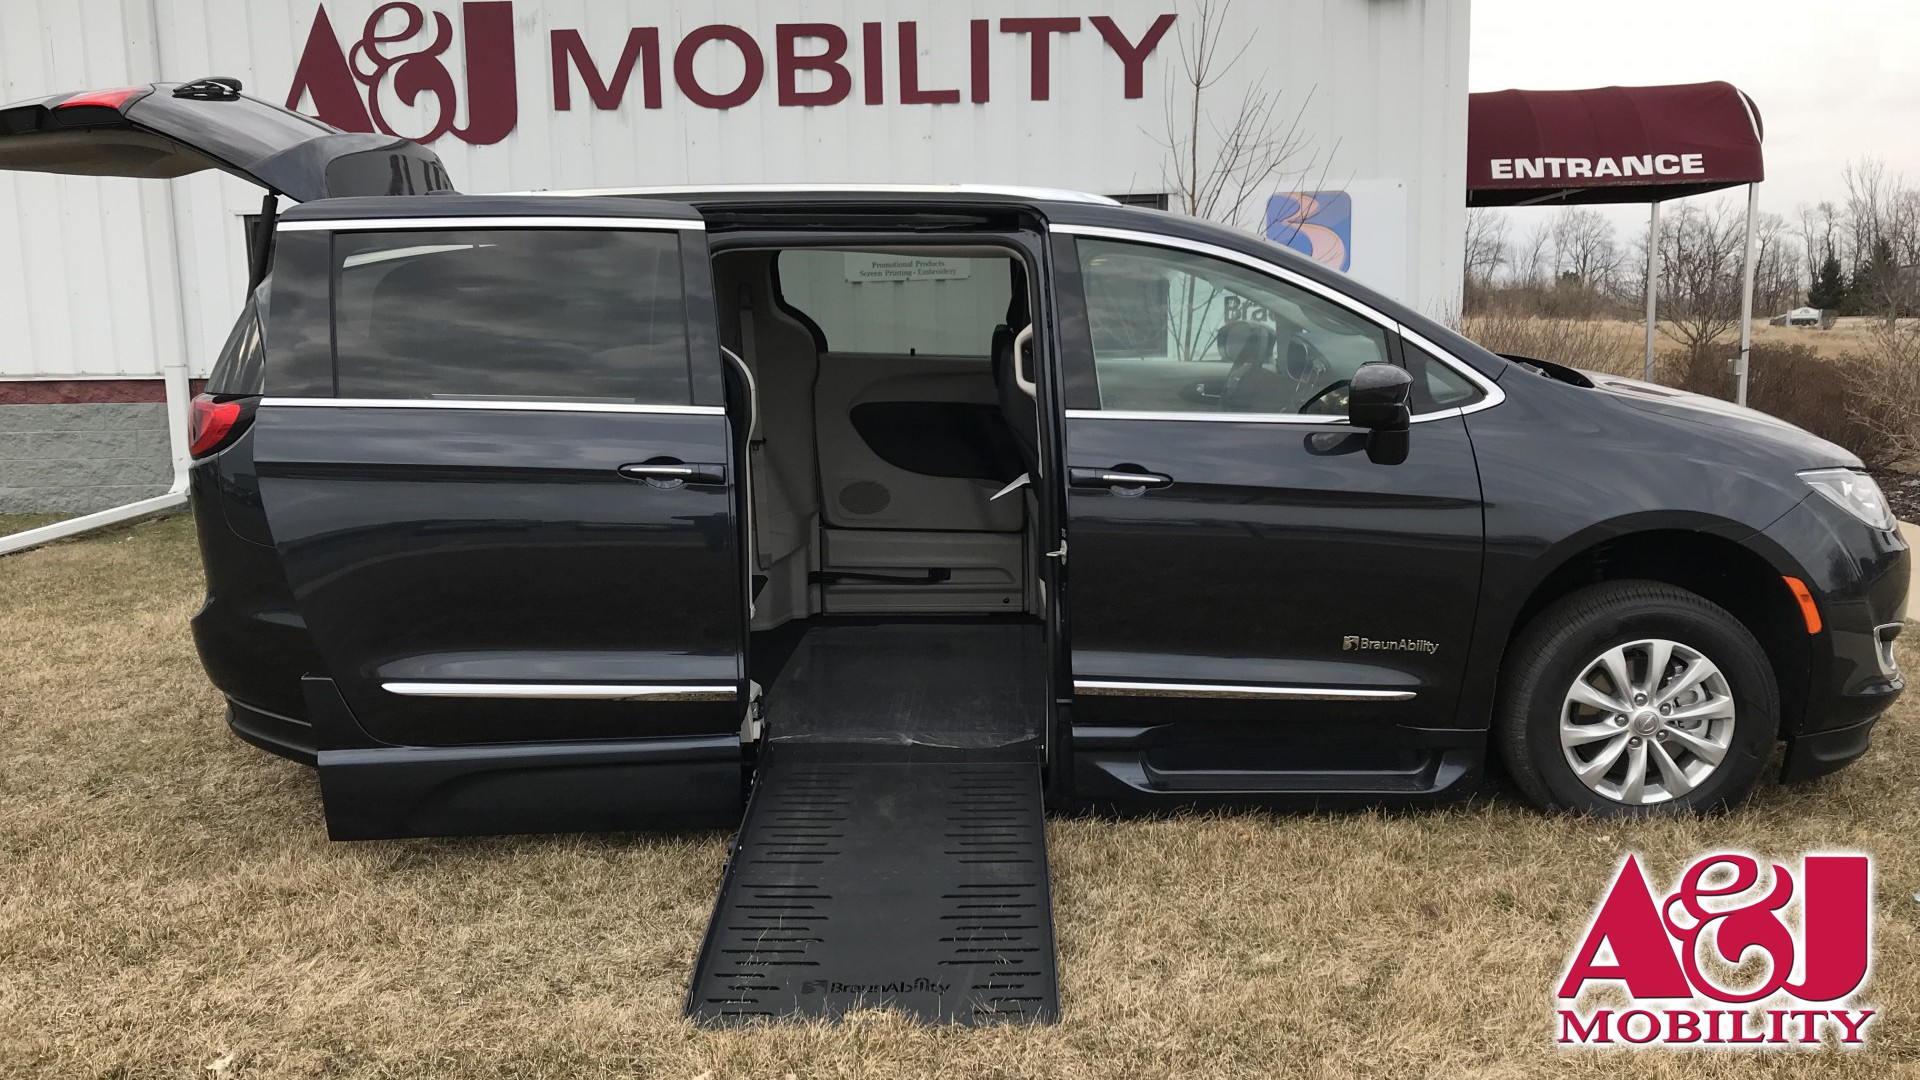 2019 Chrysler Pacifica | Conversion: BraunAbility Chrysler Entervan XT